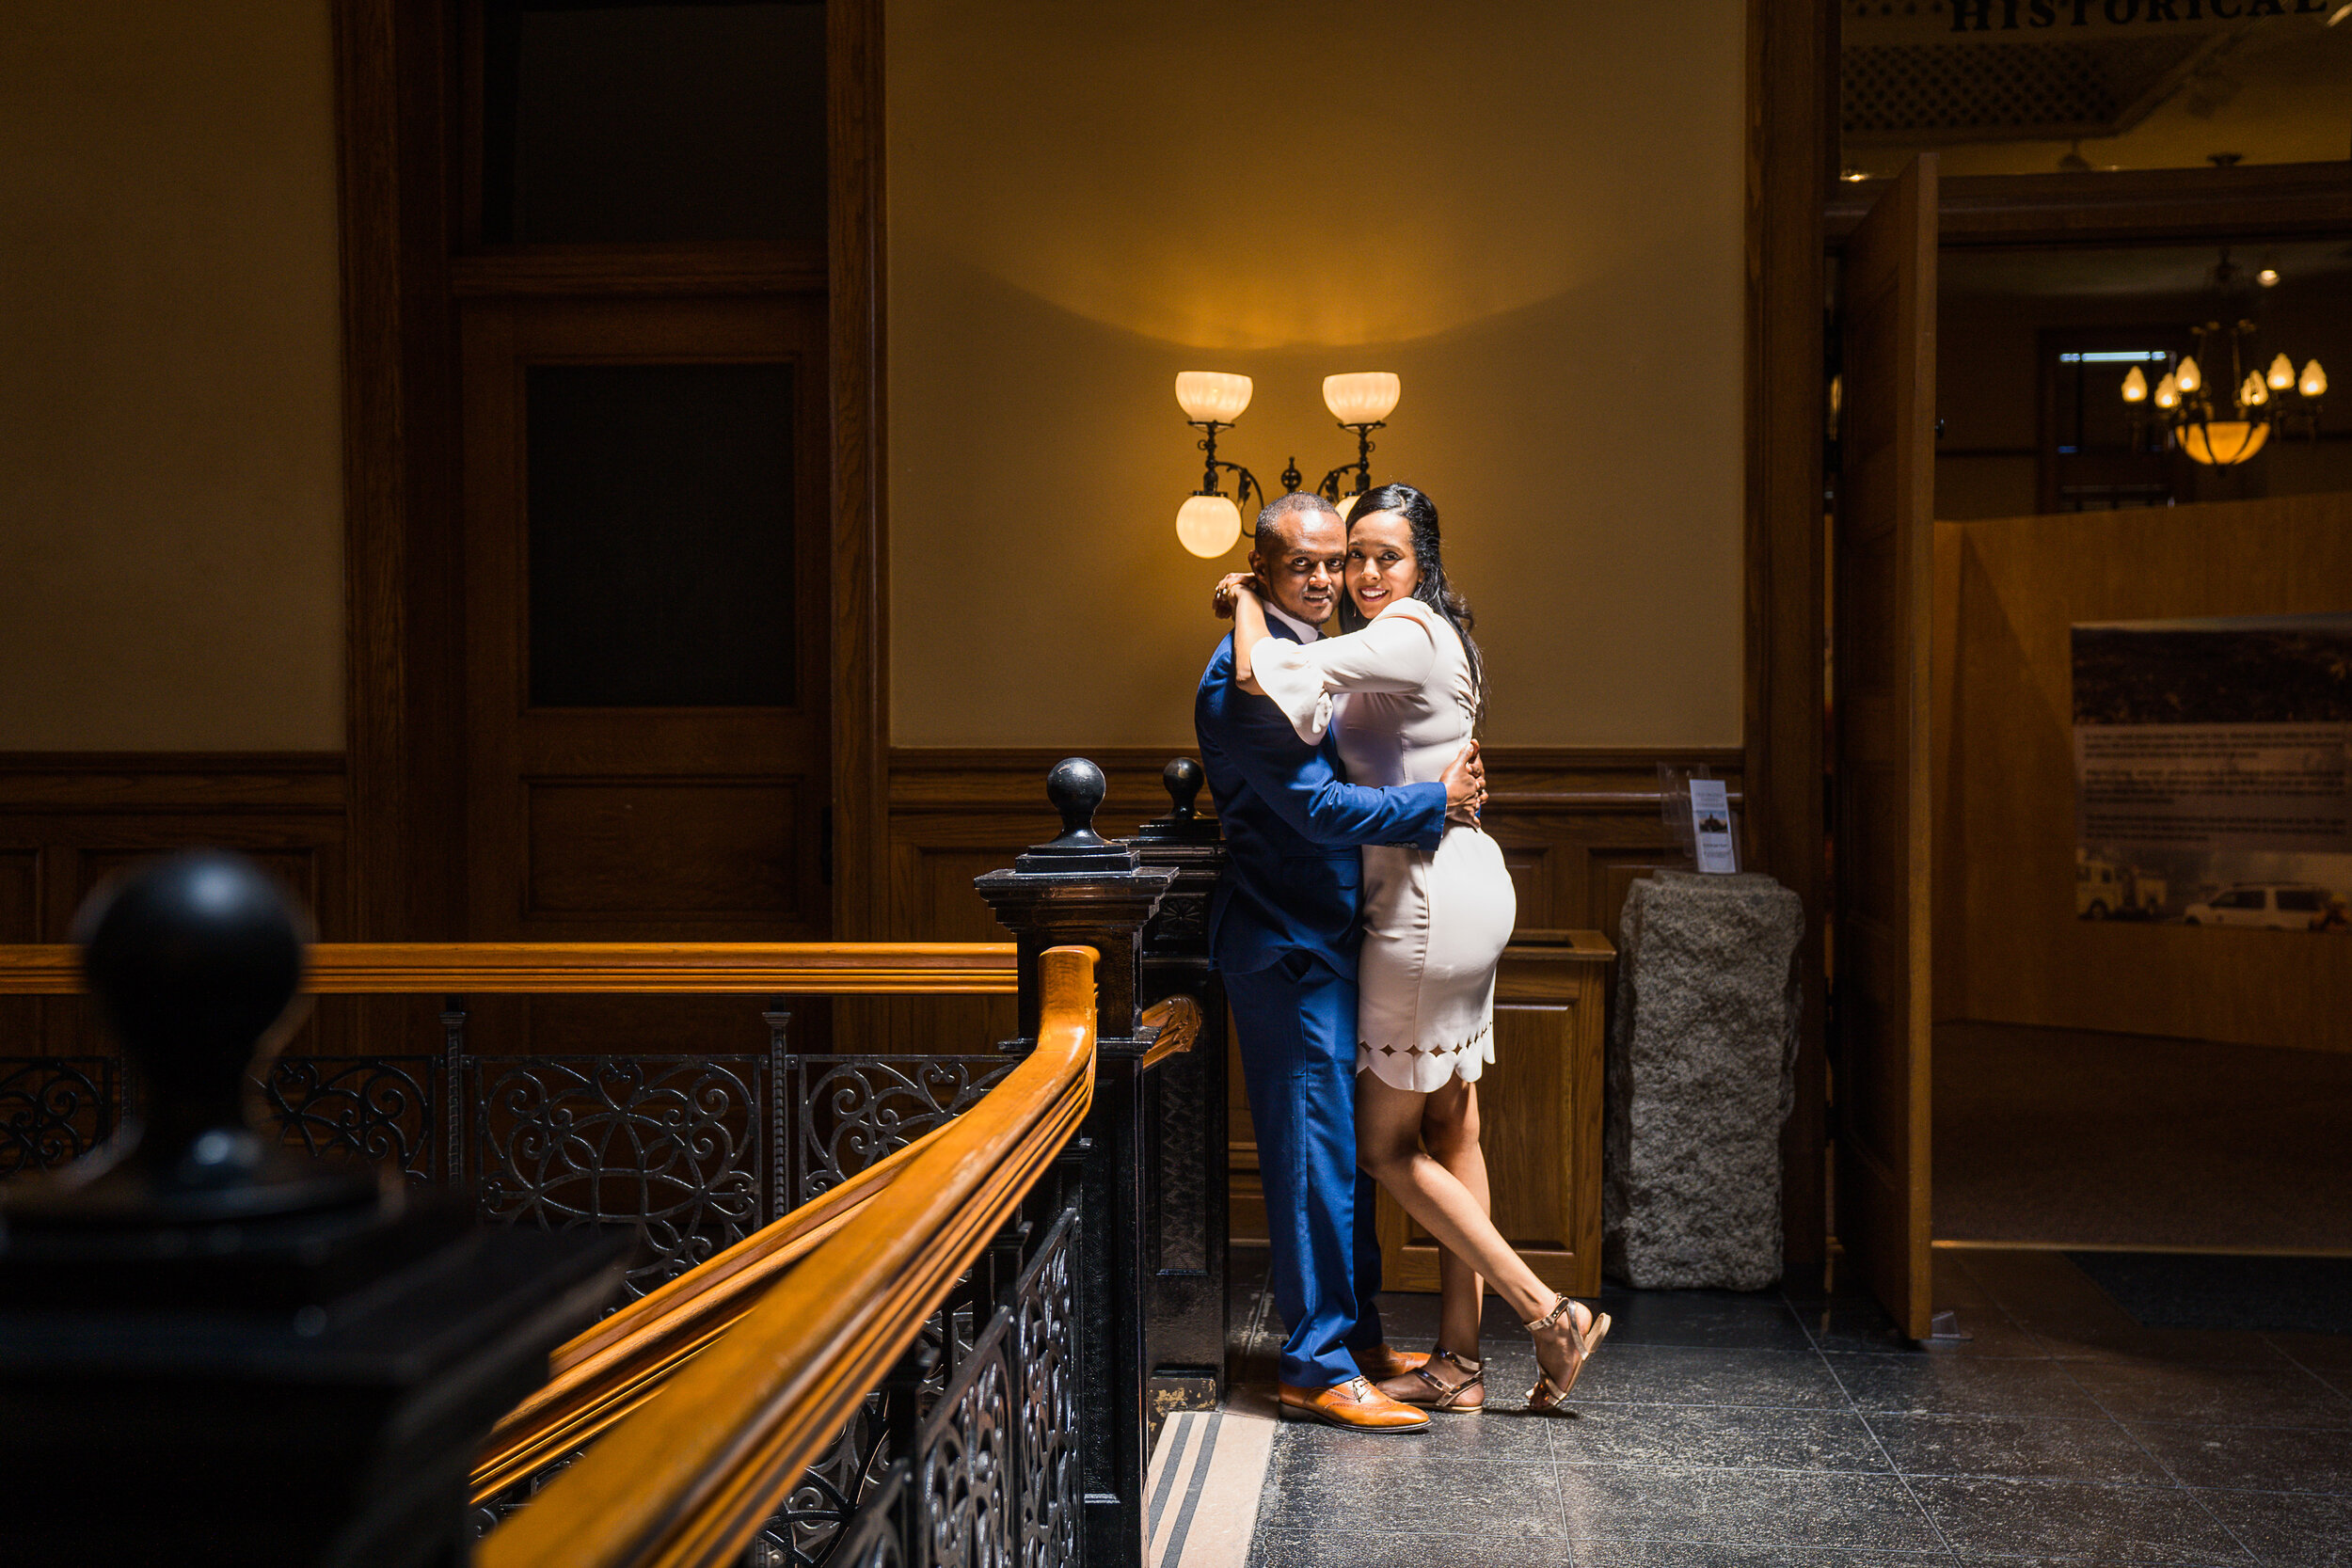 sewit-elopement-orange-county-santa-ana-courthouse-36.jpg